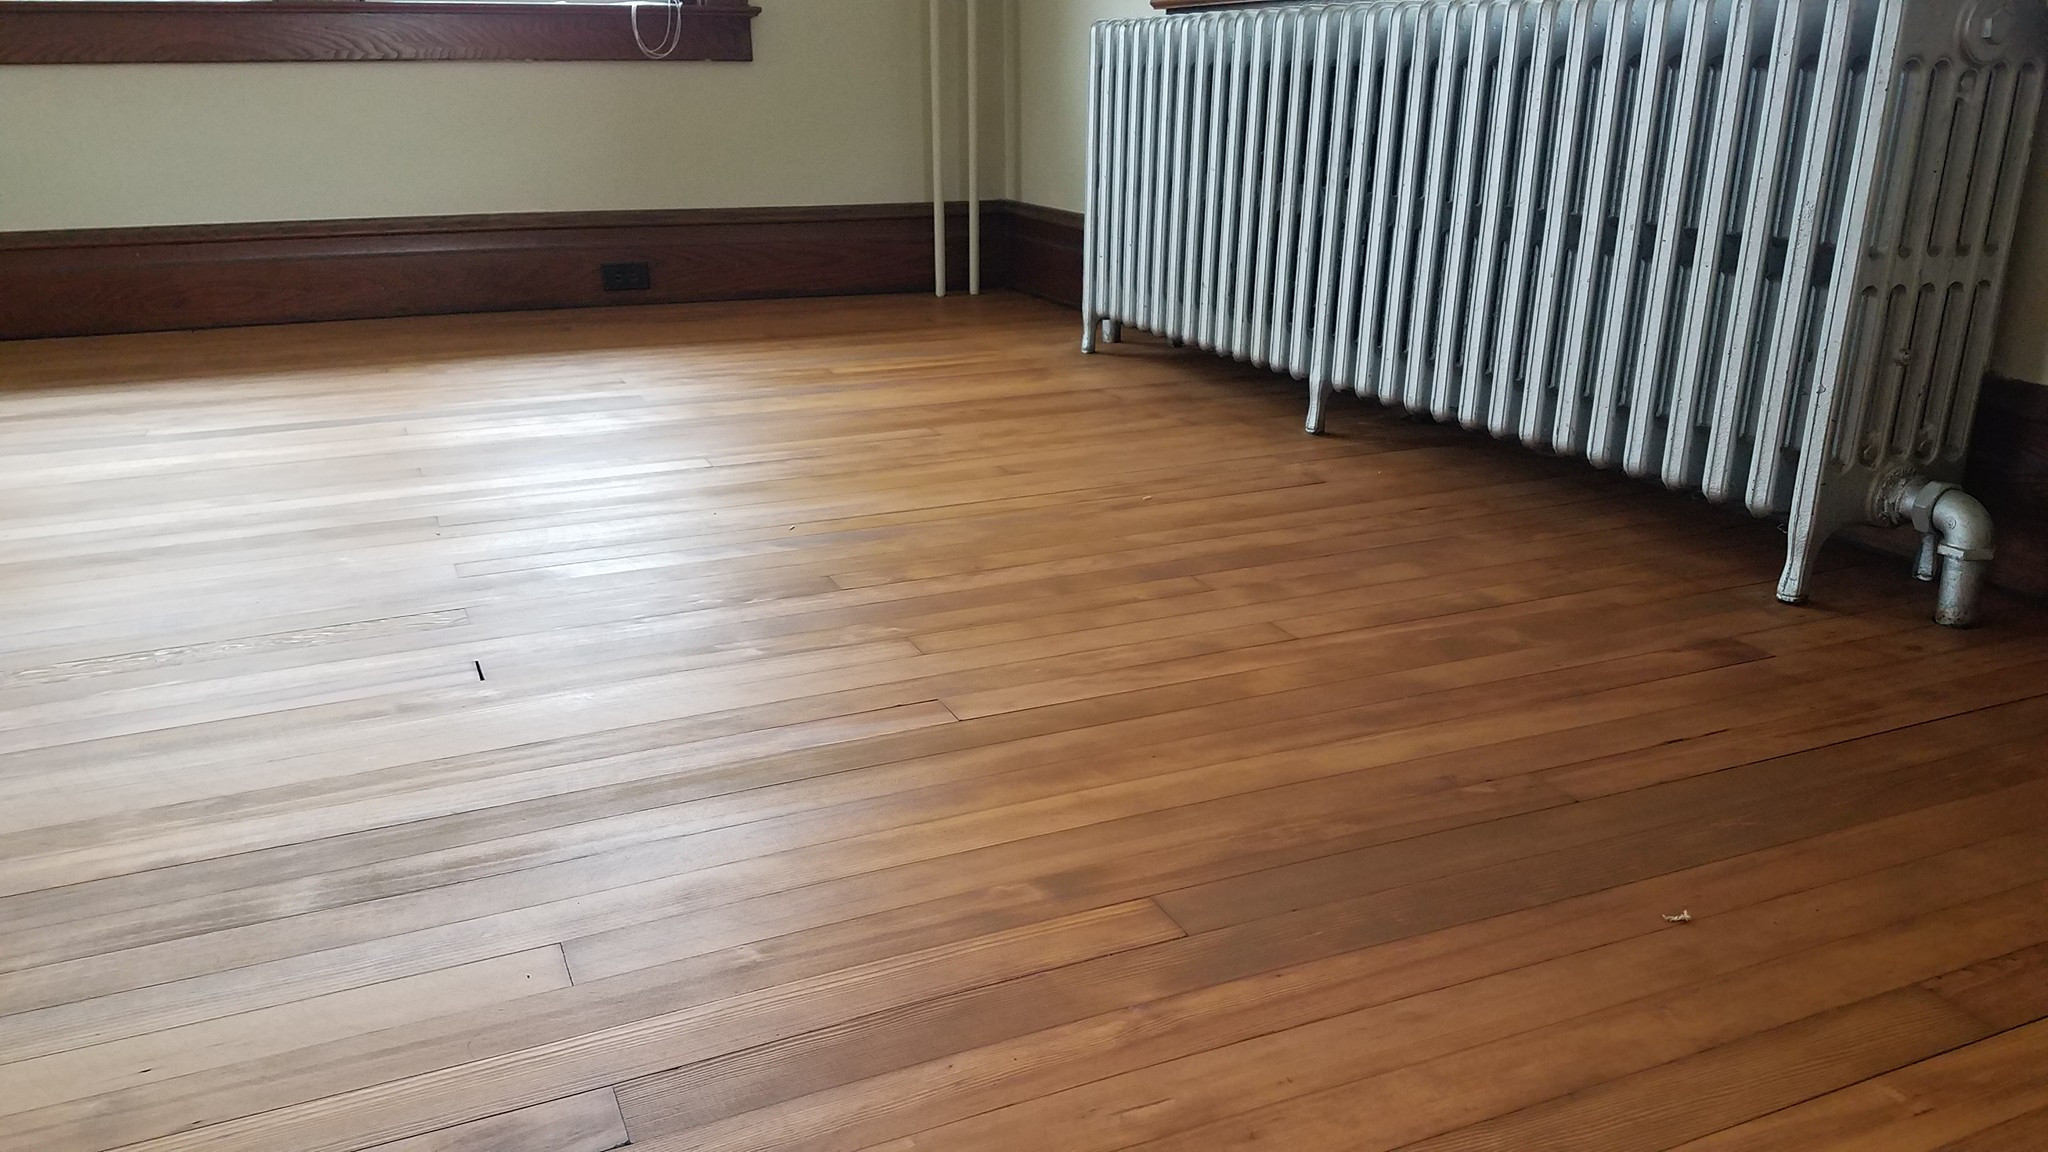 Hardwood Flooring Lancaster Pa Of Vintage Wood Flooring Inside 18192487 1622452841115889 4874100895389868825 O